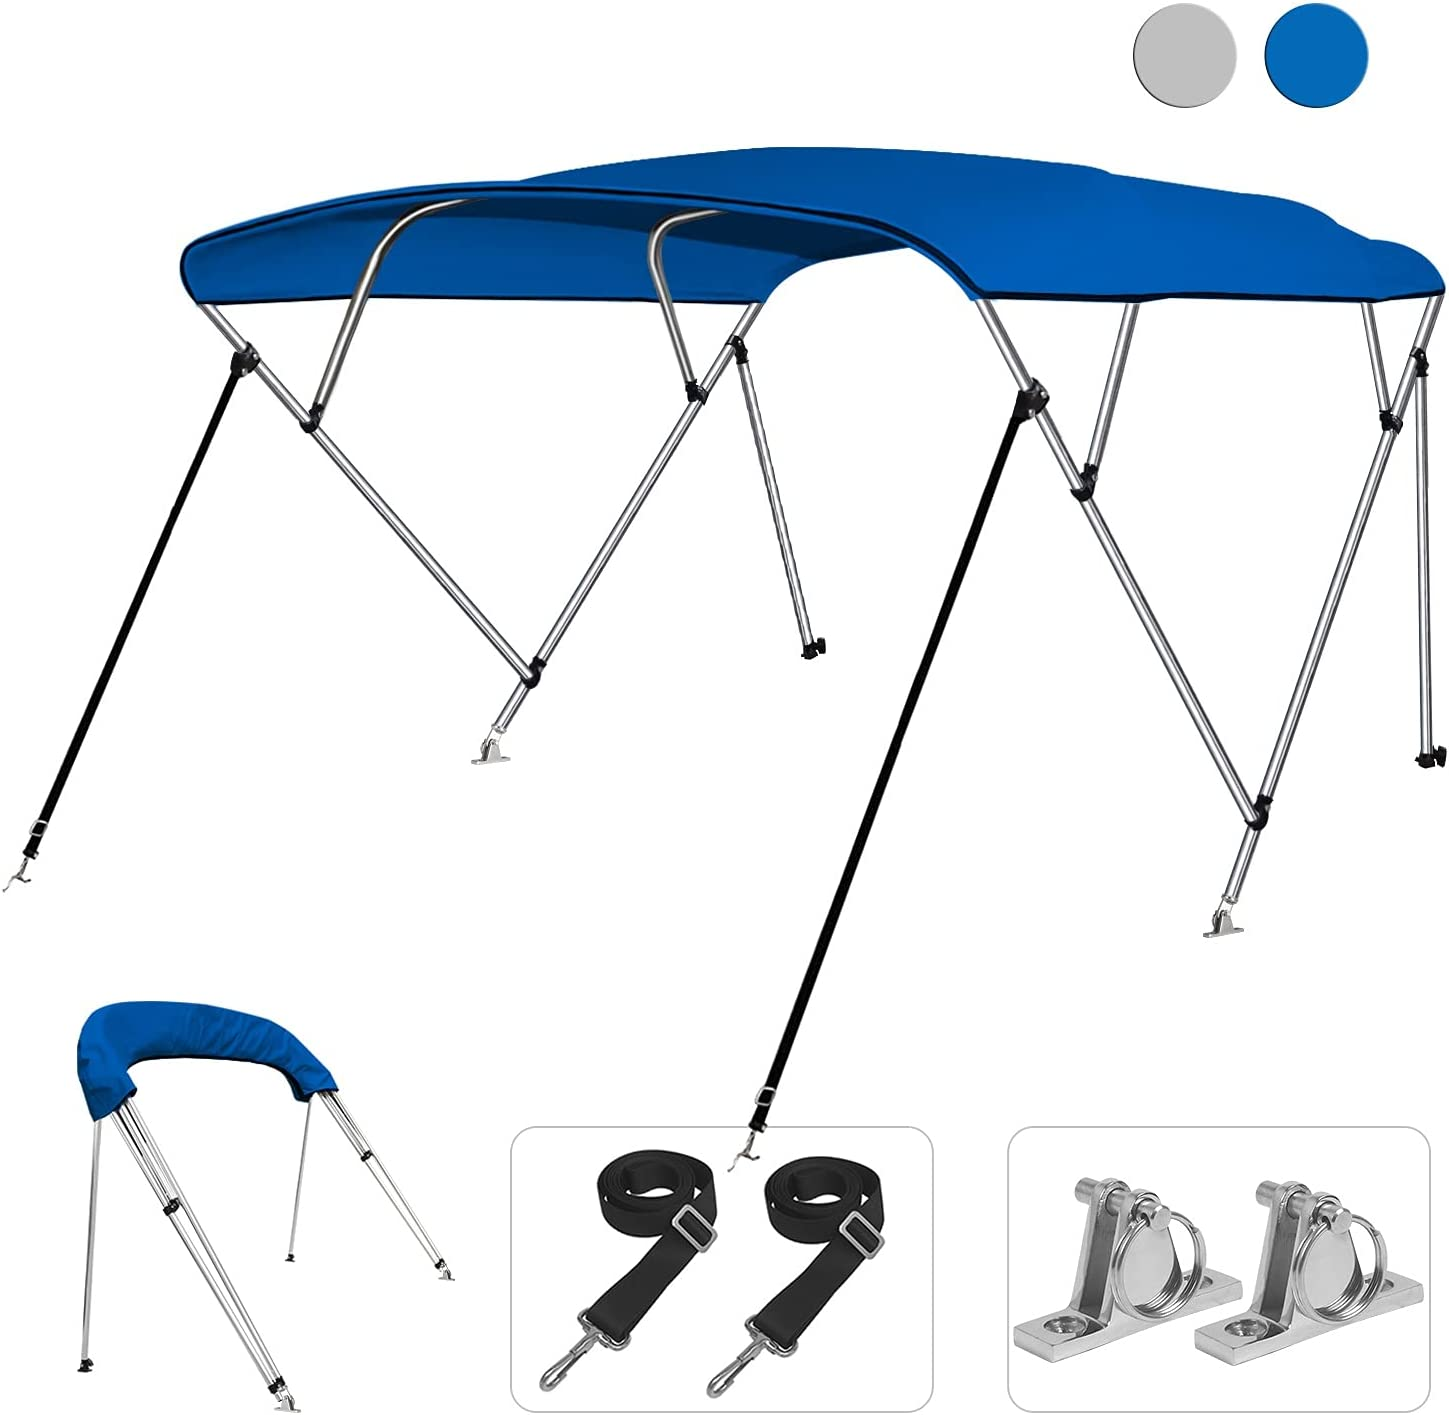 KAKIT 750D 3 4 Bow Genuine Bimini Top 2 Support Pol Boat Virginia Beach Mall with Cover Rear